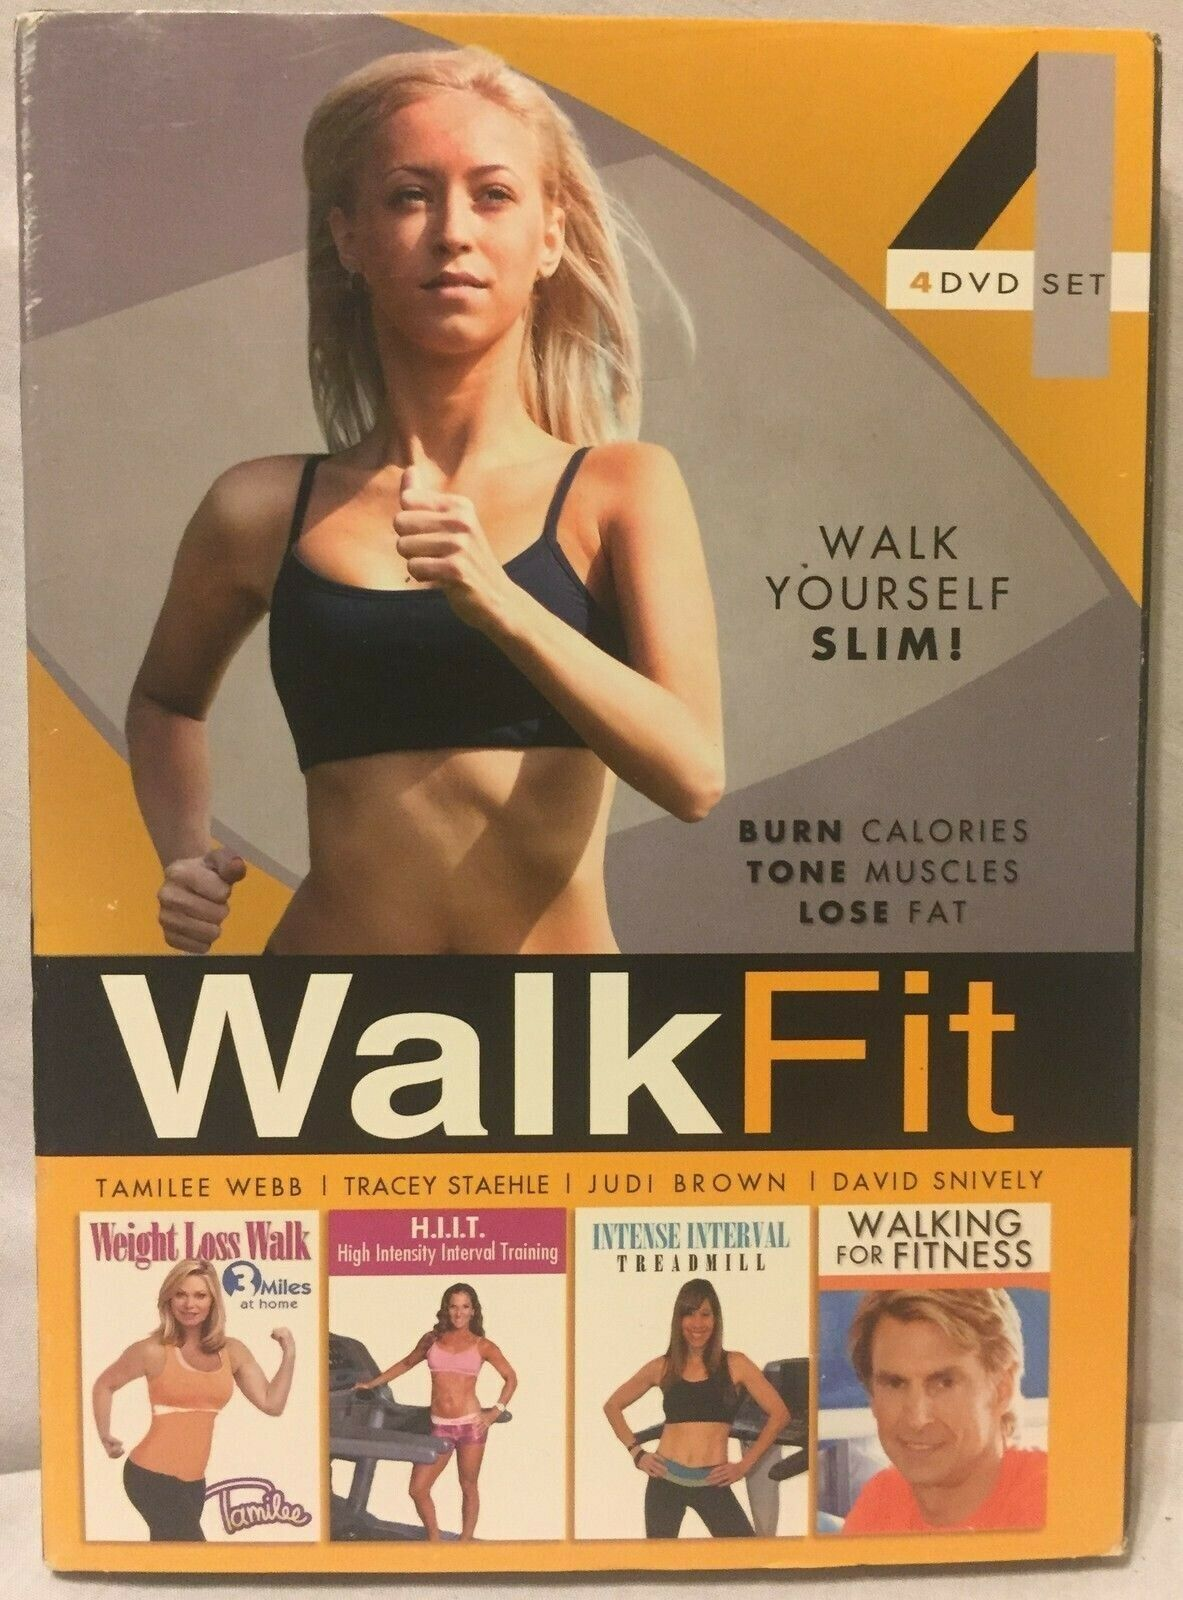 Walk Fit 4 DVD set Weight loss Walking Tamilee HIIT Treadmilll for fitness lose 2